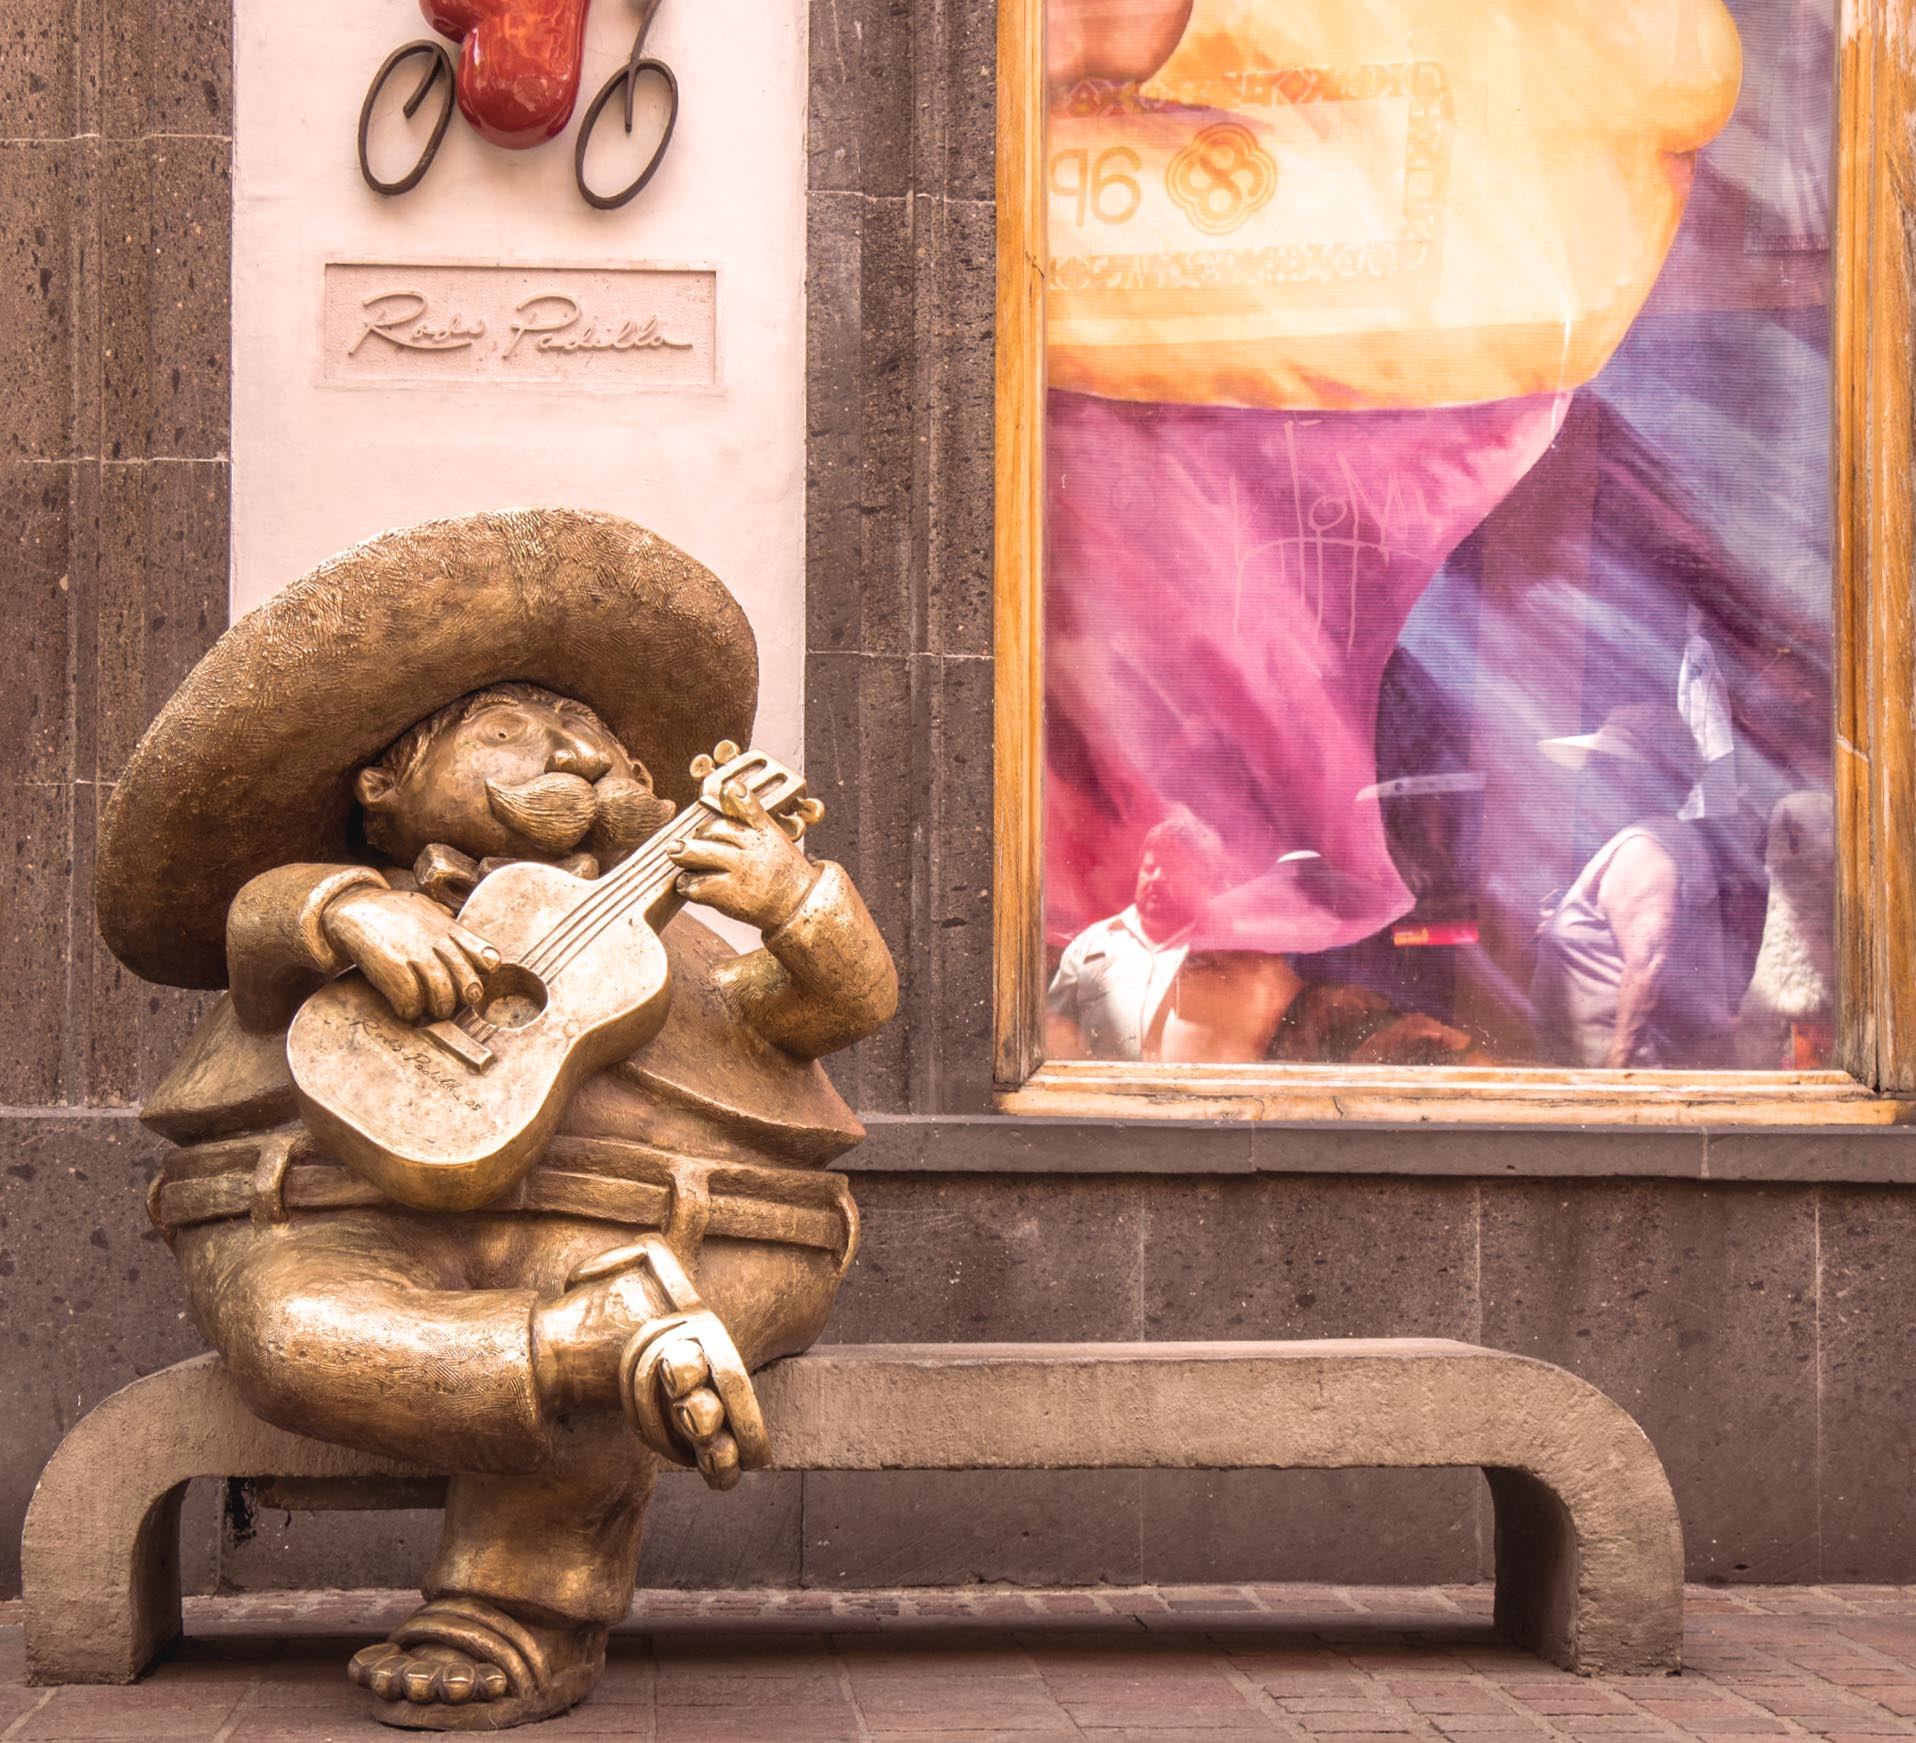 Things to do in Tlaquepaque, Mexico